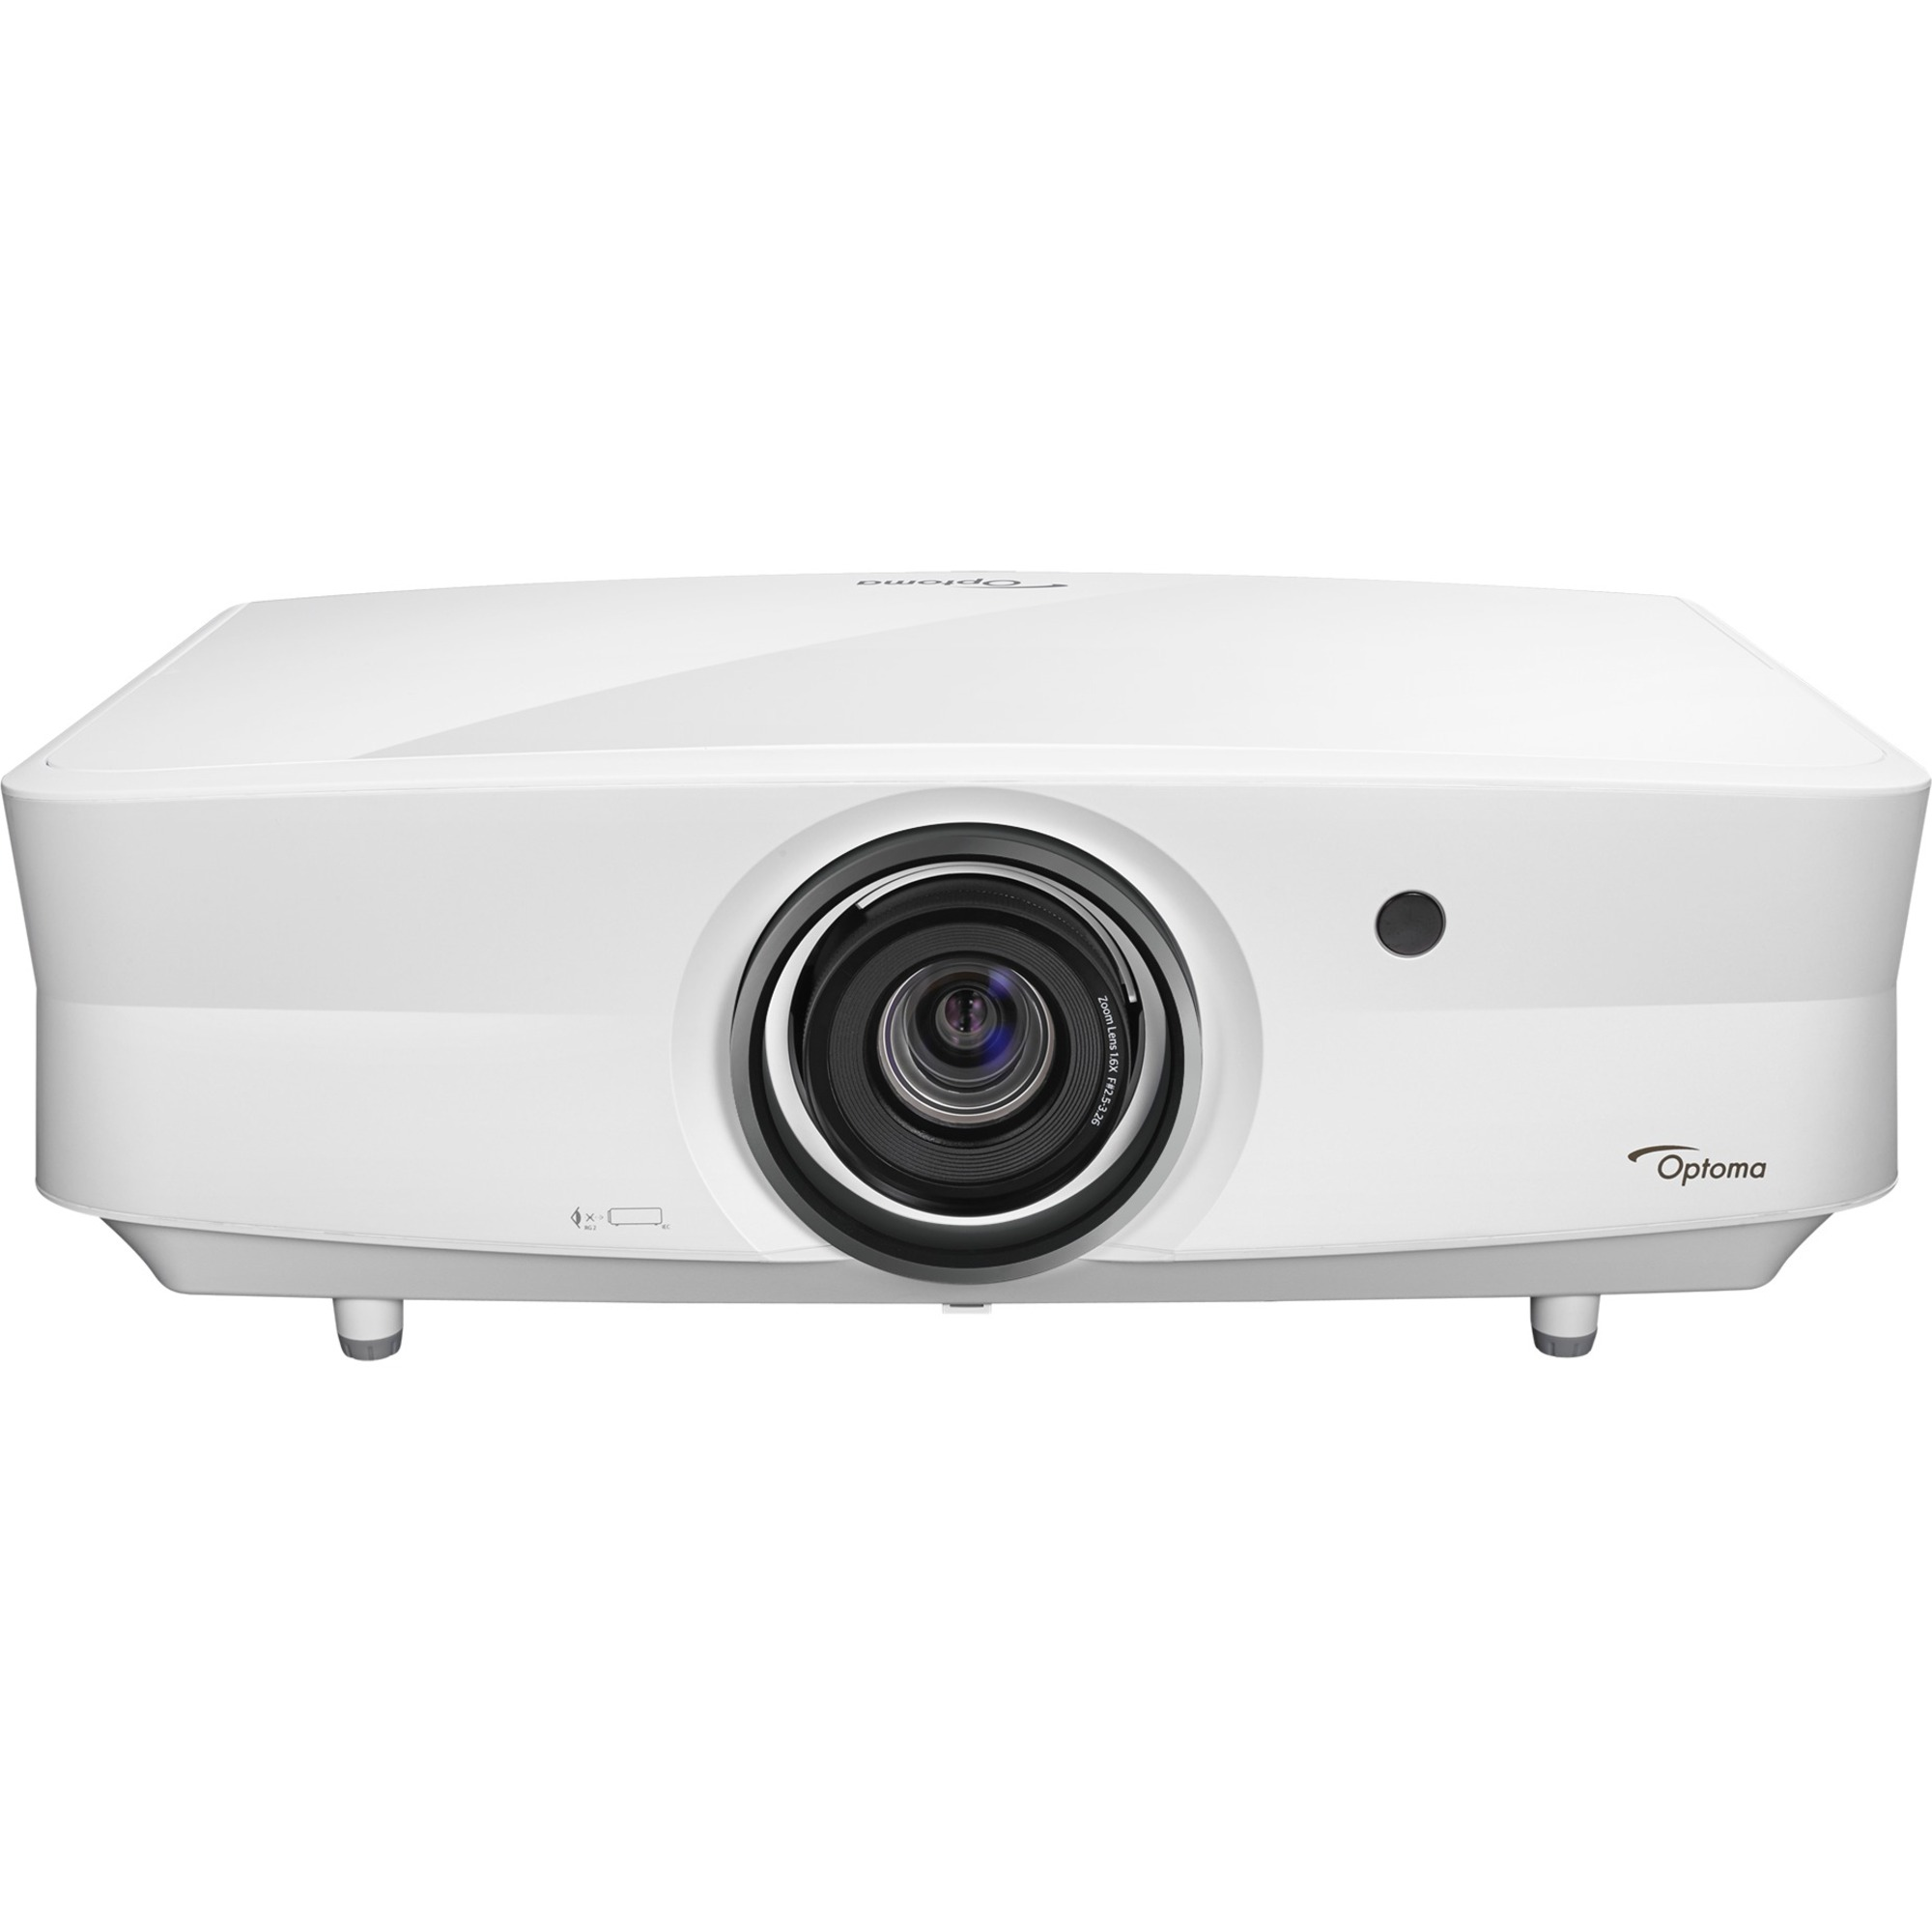 Optoma ZK507-W 3D Ready DLP Projector - 16:9 - White_subImage_1